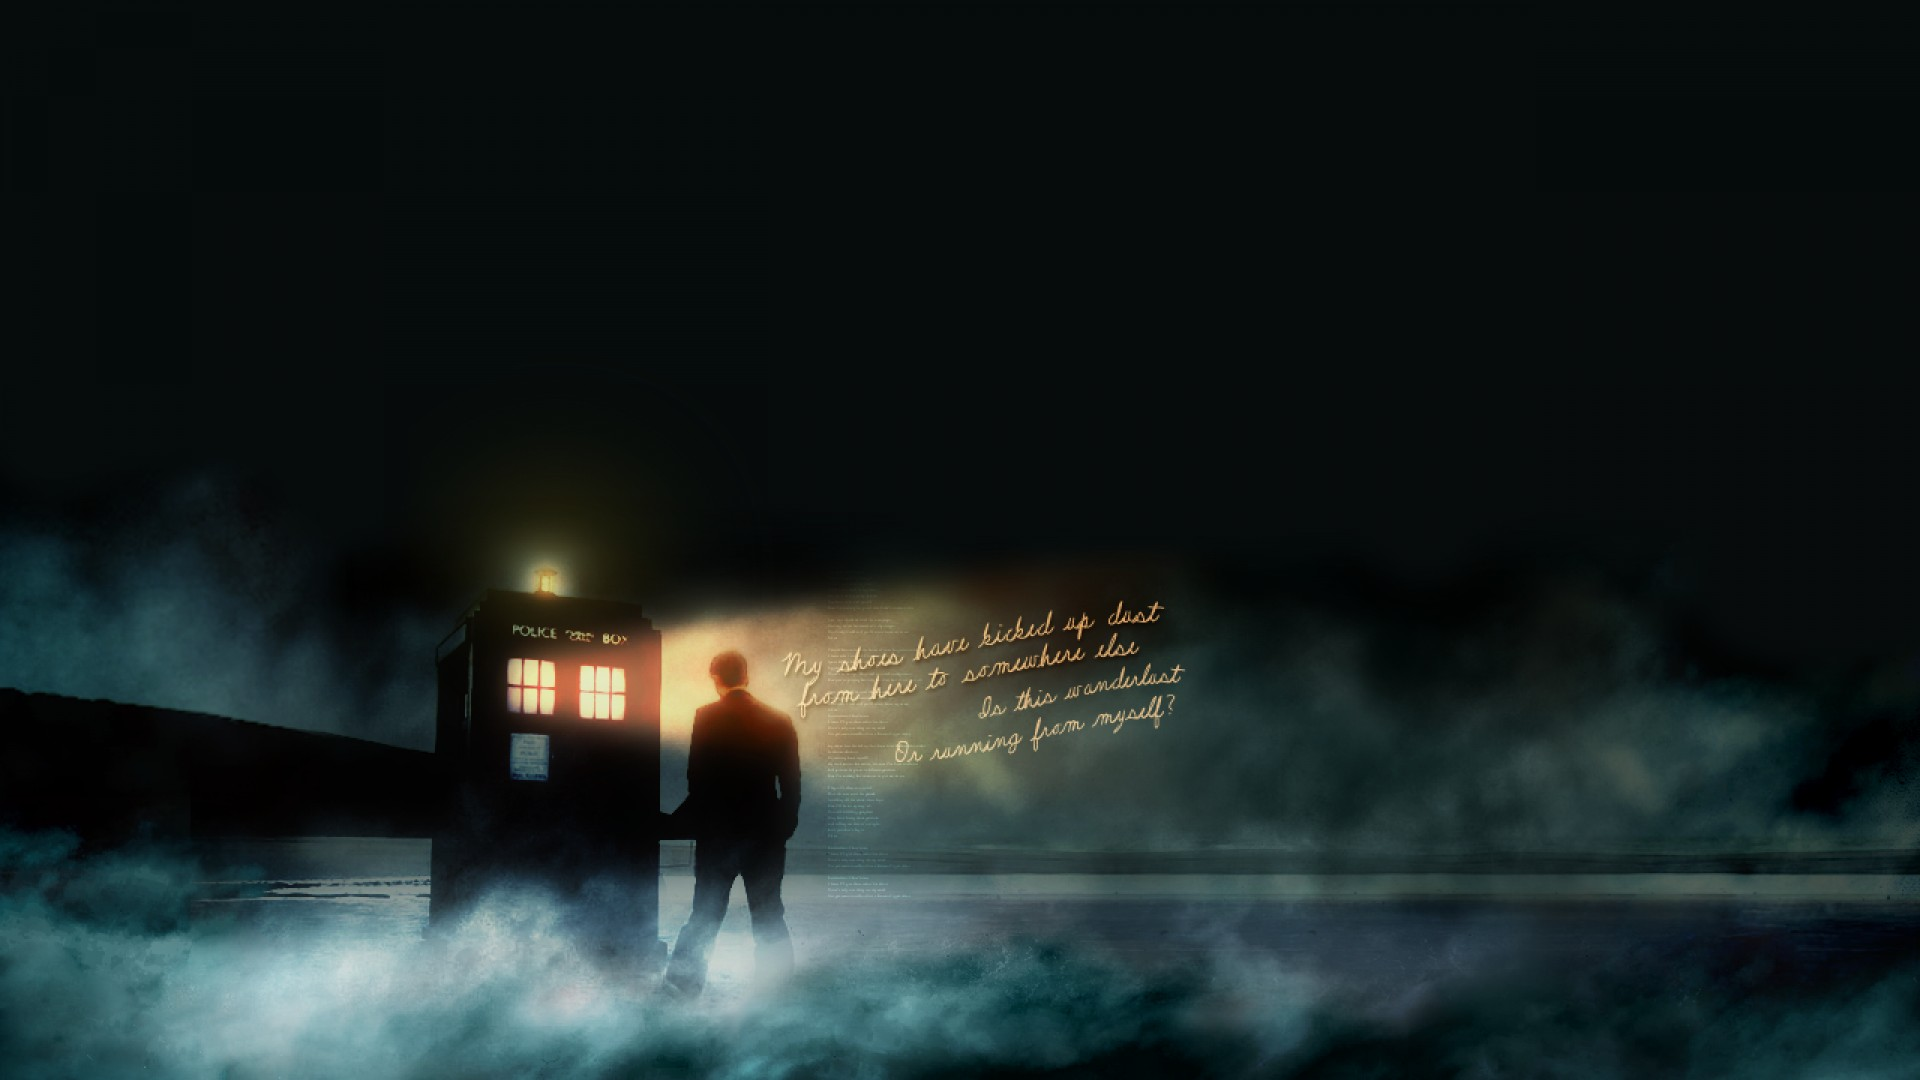 Doctor Who Wallpaper Archives 4k Hd Wallpapers Hd